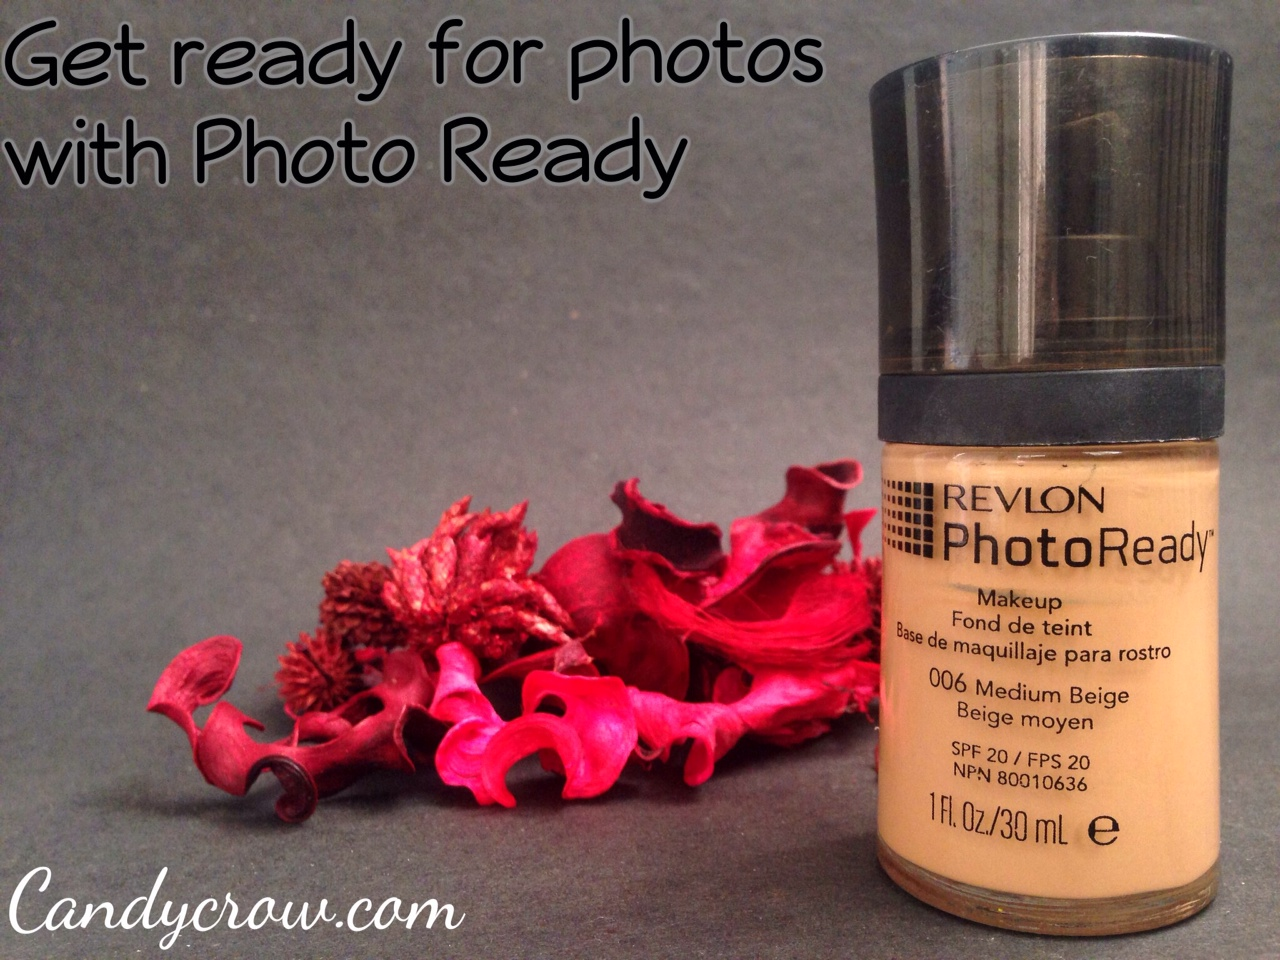 Revlon Photo Ready Foundation - Medium Beige Review